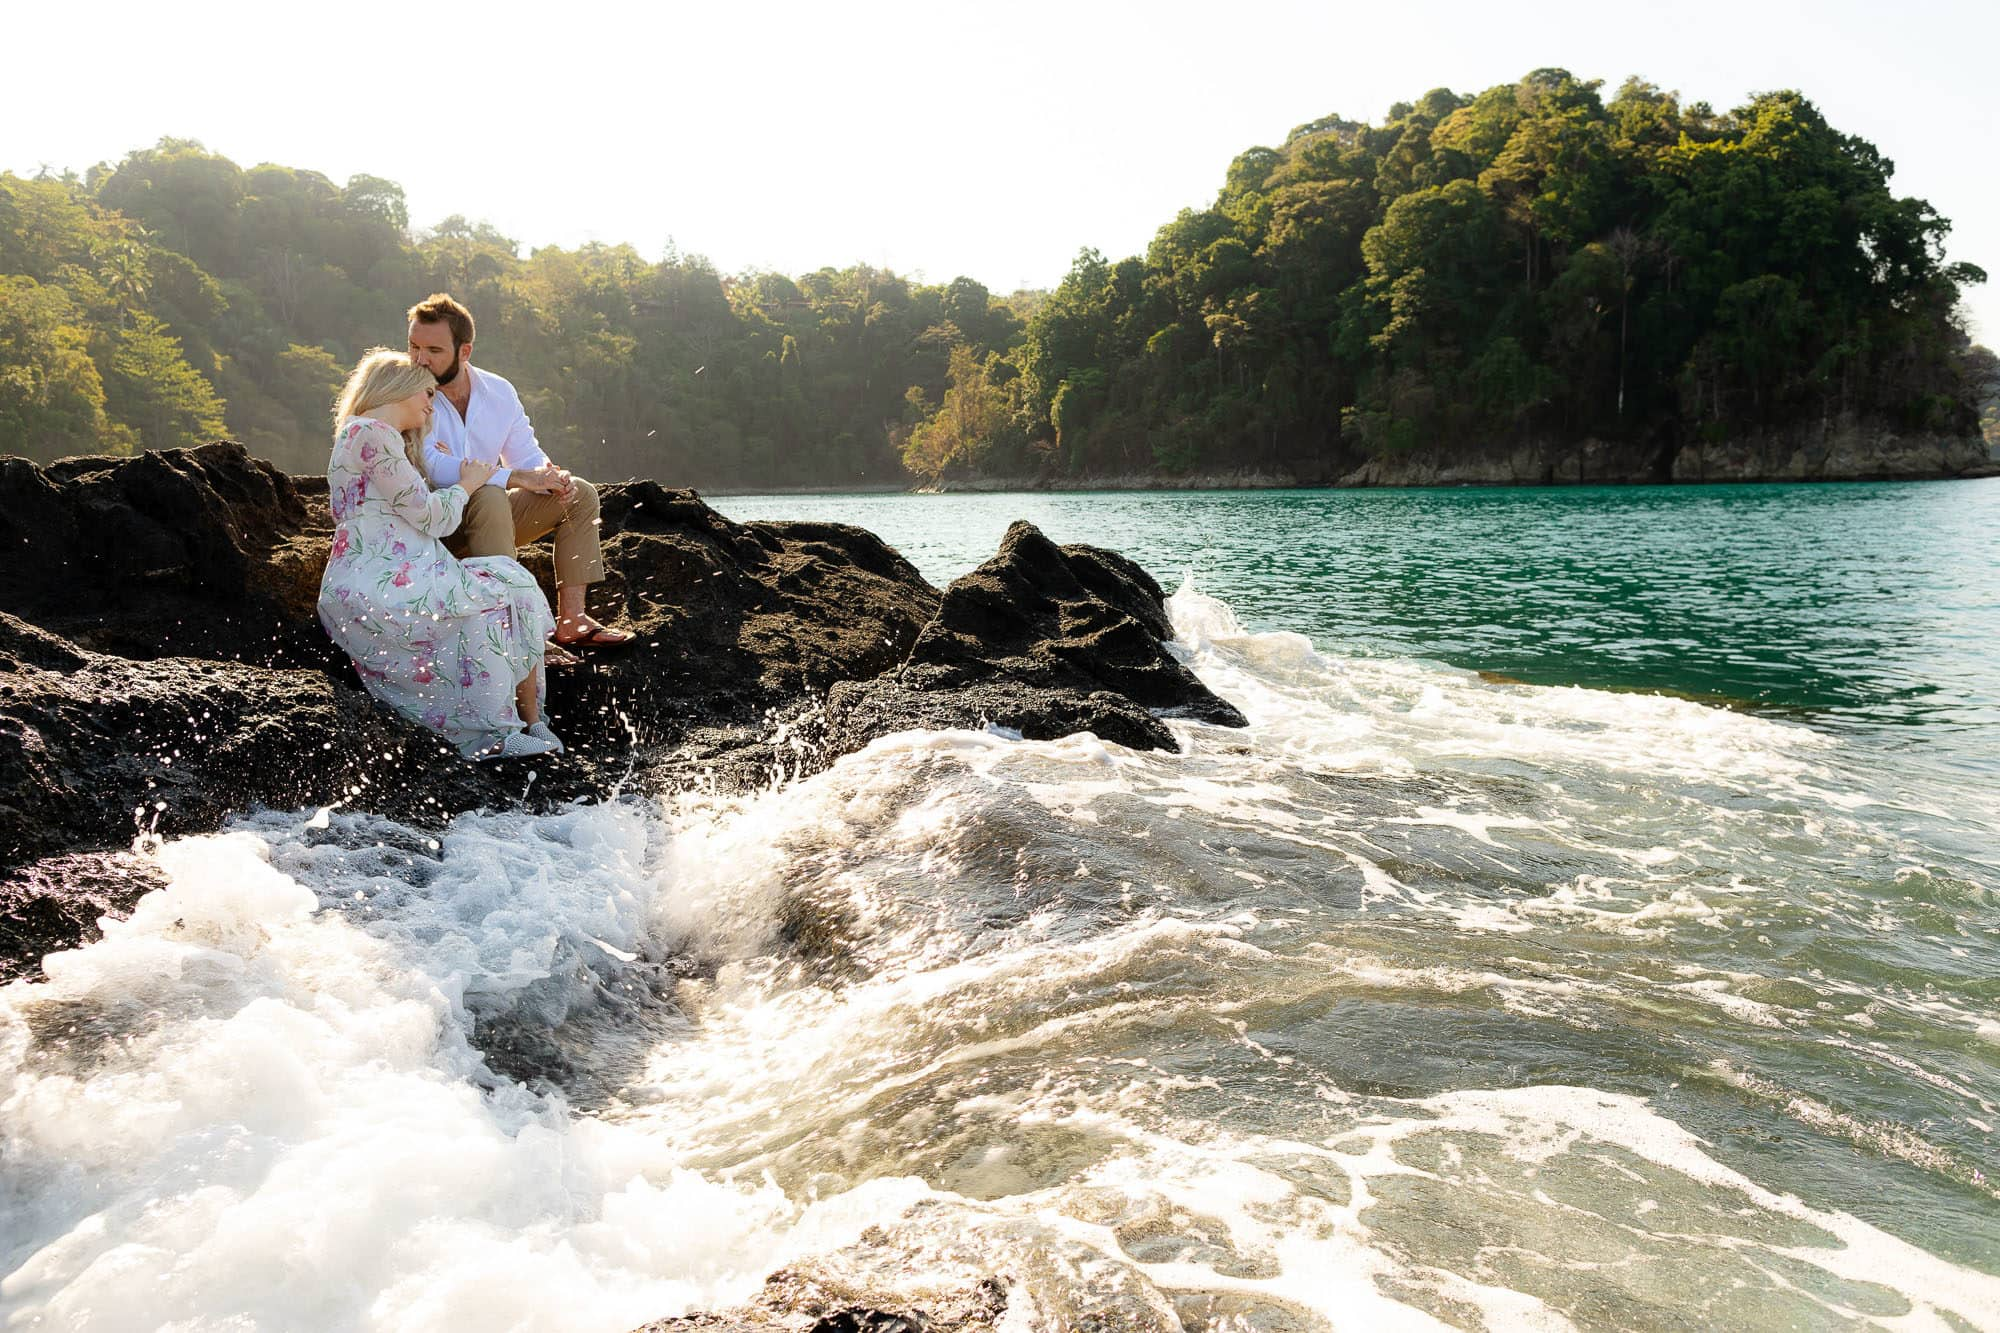 by the water for couple's photos